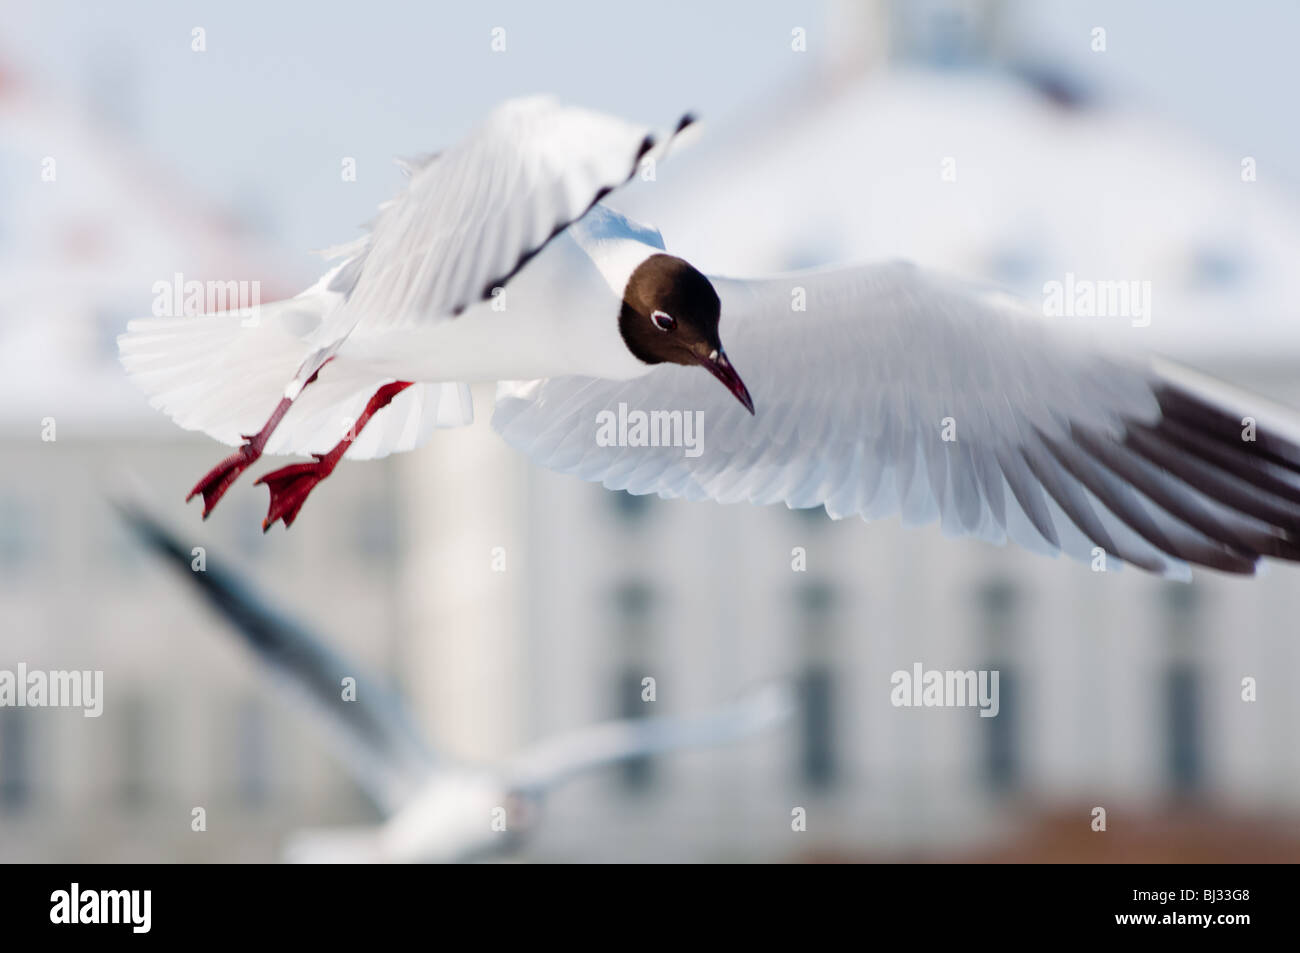 A Black-headed Gull (Chroicocephalus ridibundus) caught in mid flight at Nymphenburg palace in Munich, Germany. - Stock Image